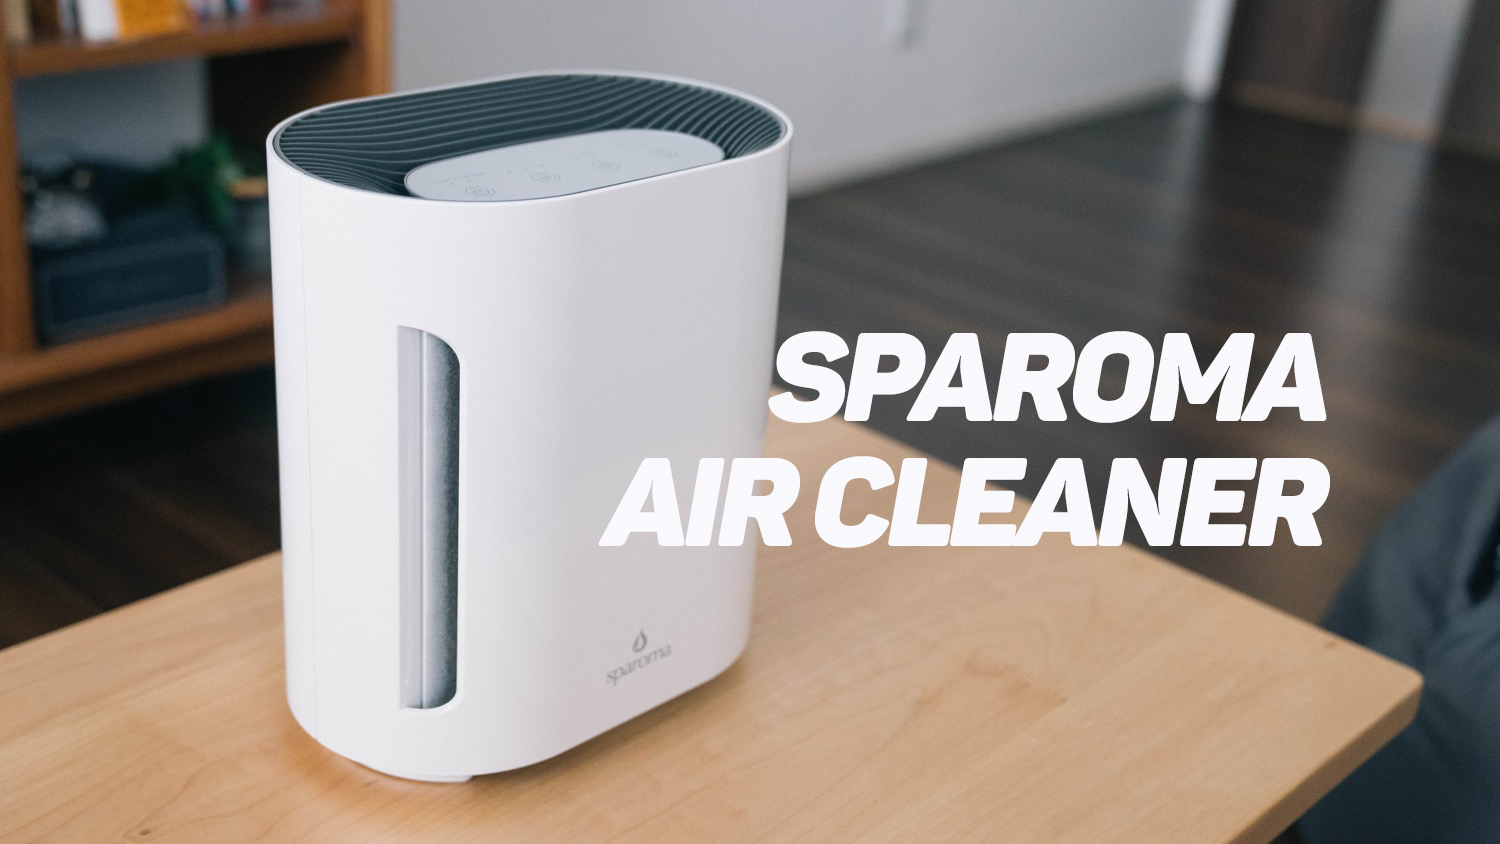 Sparroma air cleaner top